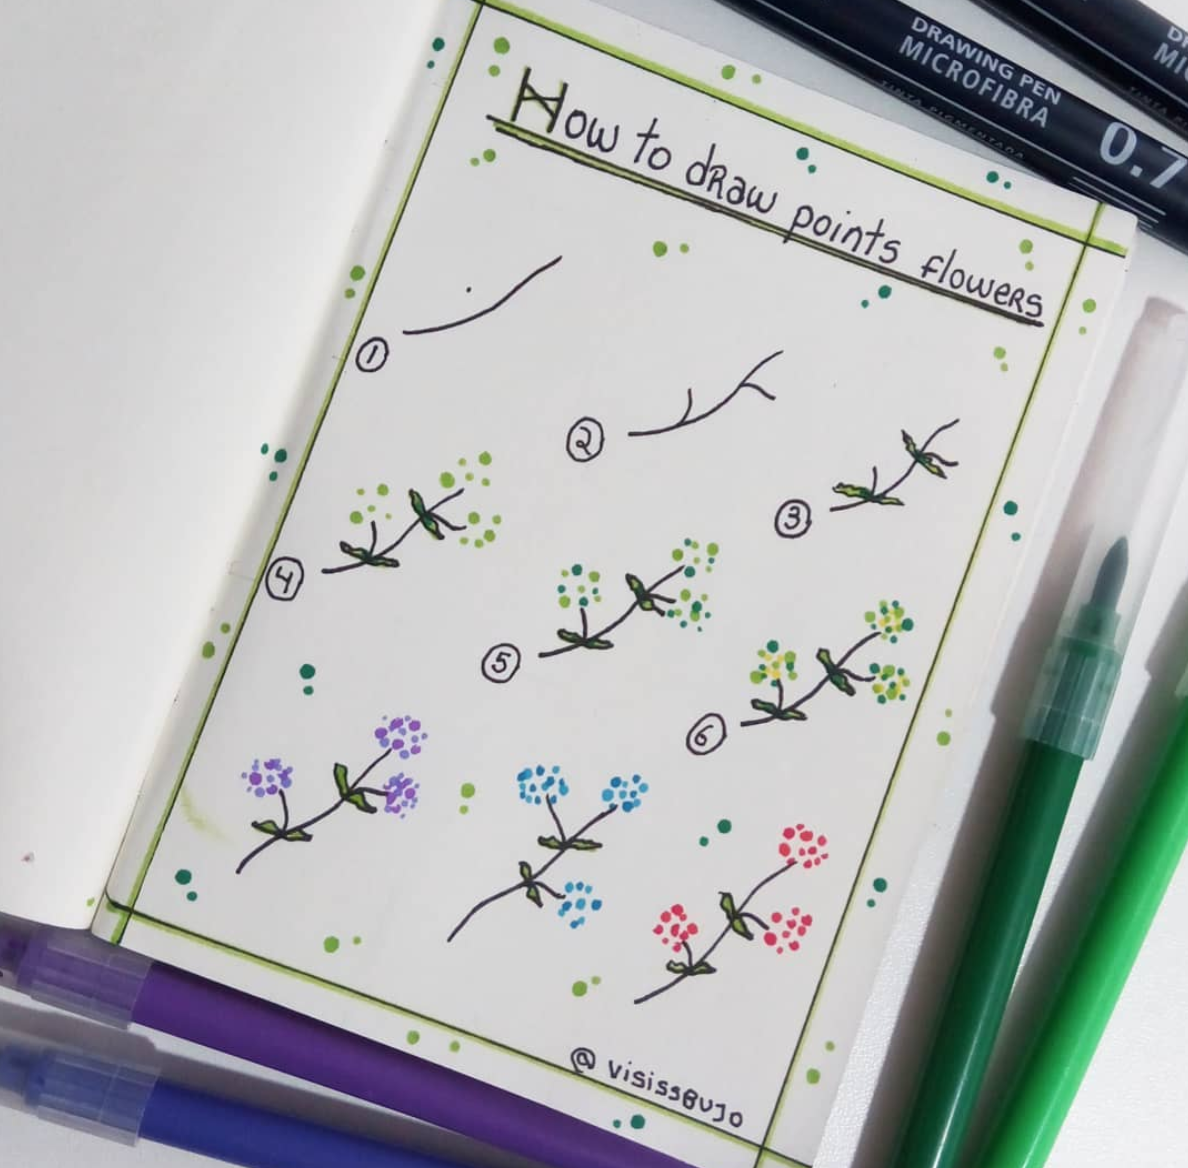 Yes! You can draw. Add cute plants and other doodles to you notebook or planner with these fun tutorials at Sweetplanit.com